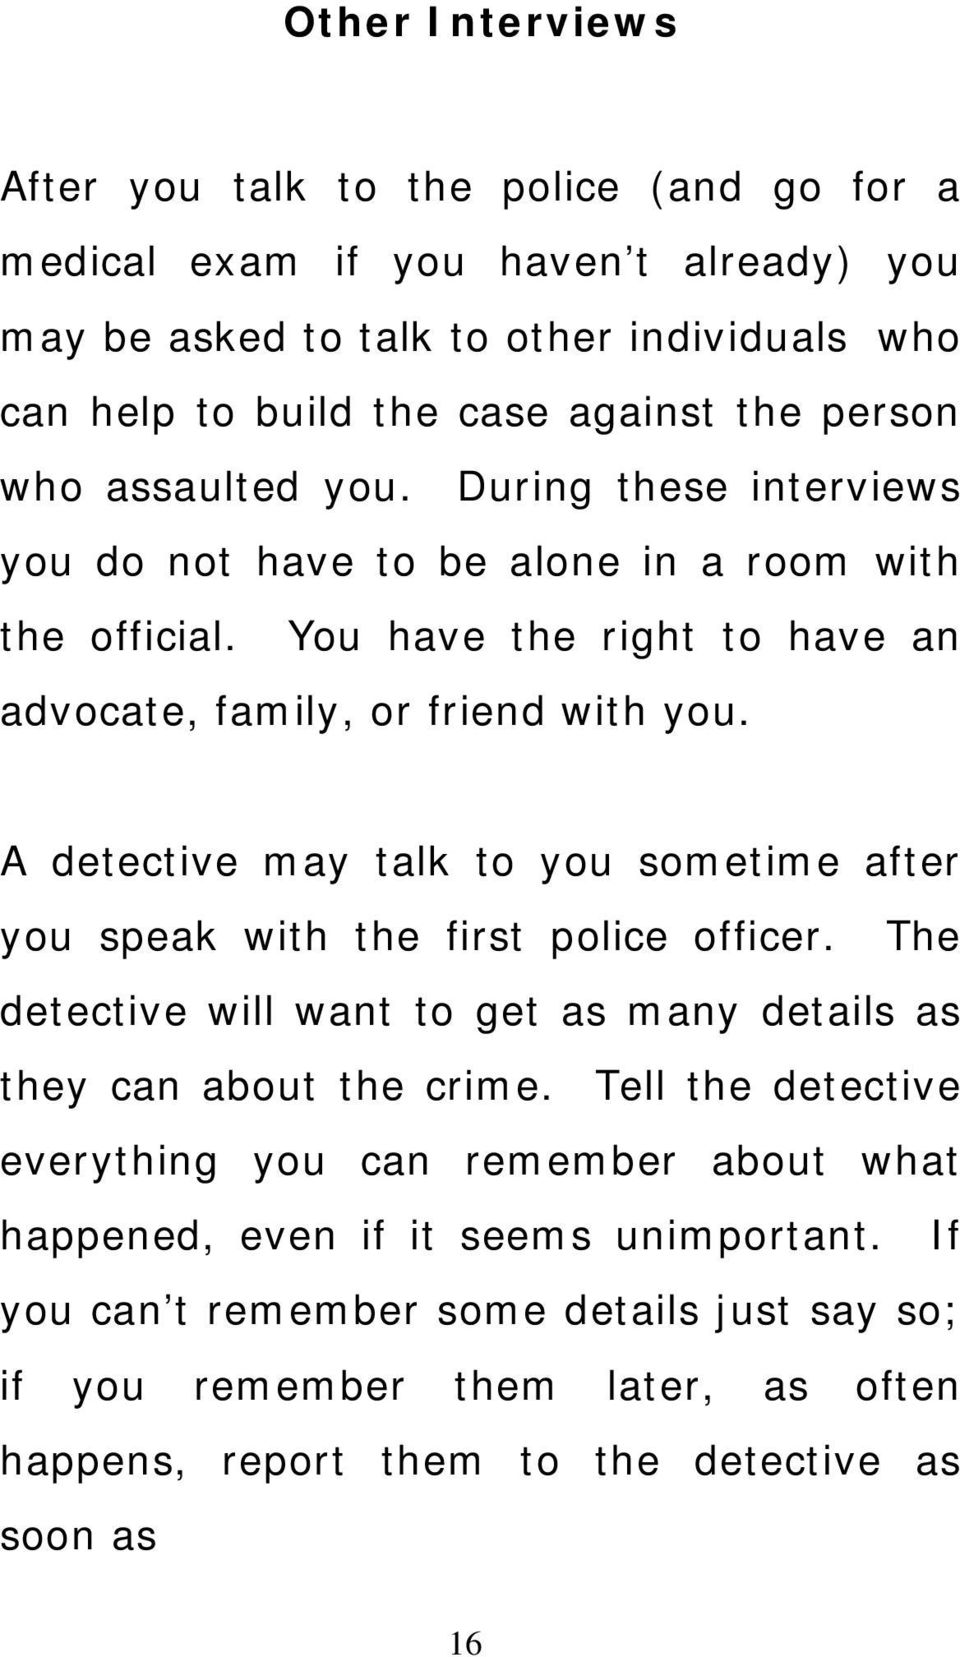 A detective may talk to you sometime after you speak with the first police officer. The detective will want to get as many details as they can about the crime.